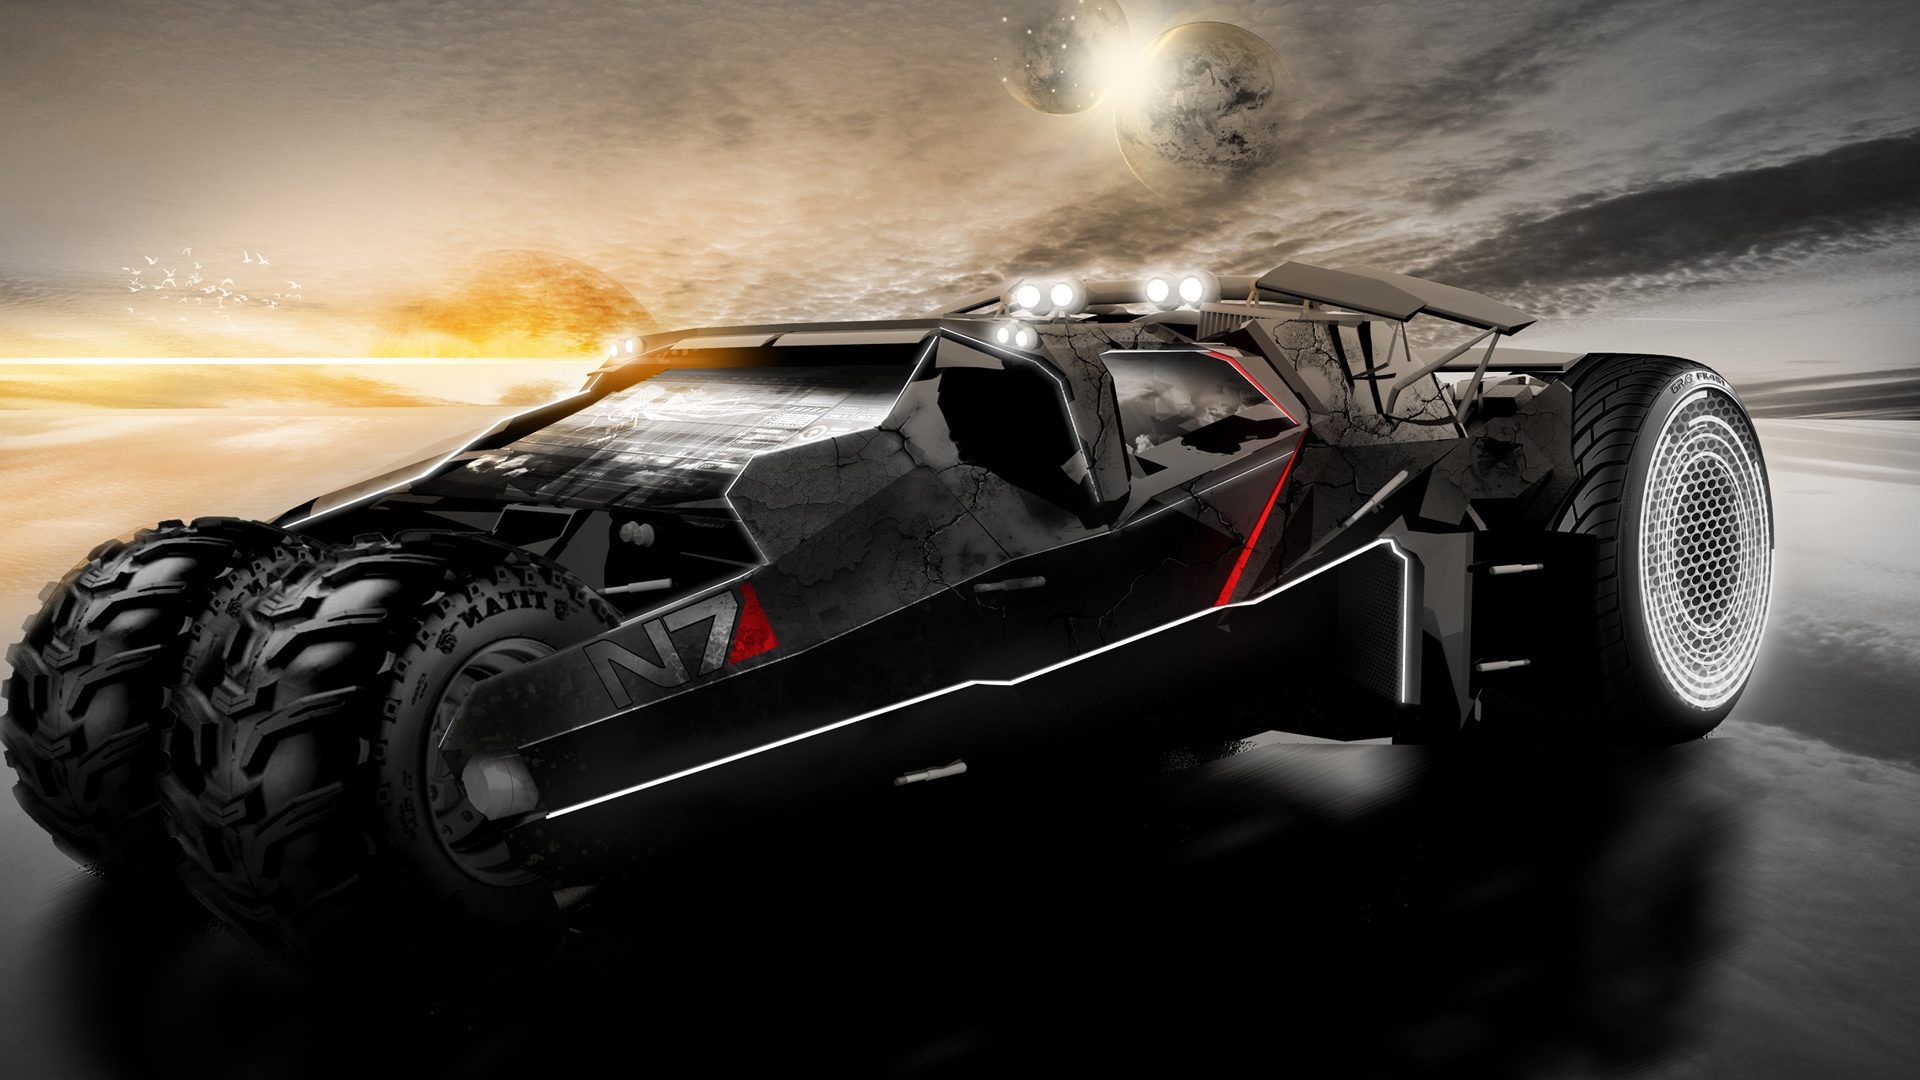 Mass Effect N7 Car Wallpapers In Jpg Format For Free Download